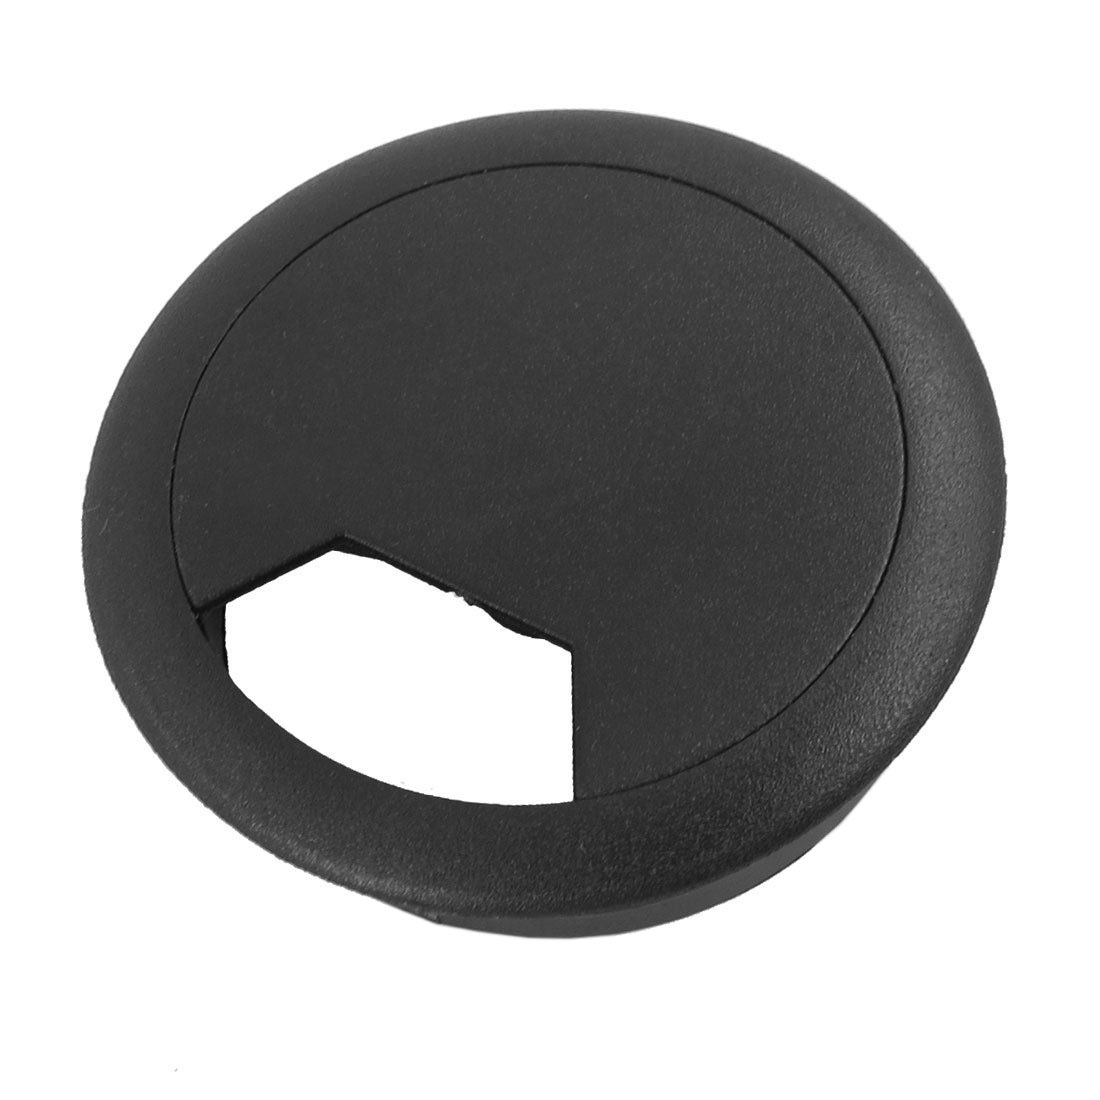 HOT GCZW-2 Pcs 50mm Diameter Desk Wire Cord Cable Grommets Hole Cover Black cc 923 cable cord holder wire winder black white 6 pcs